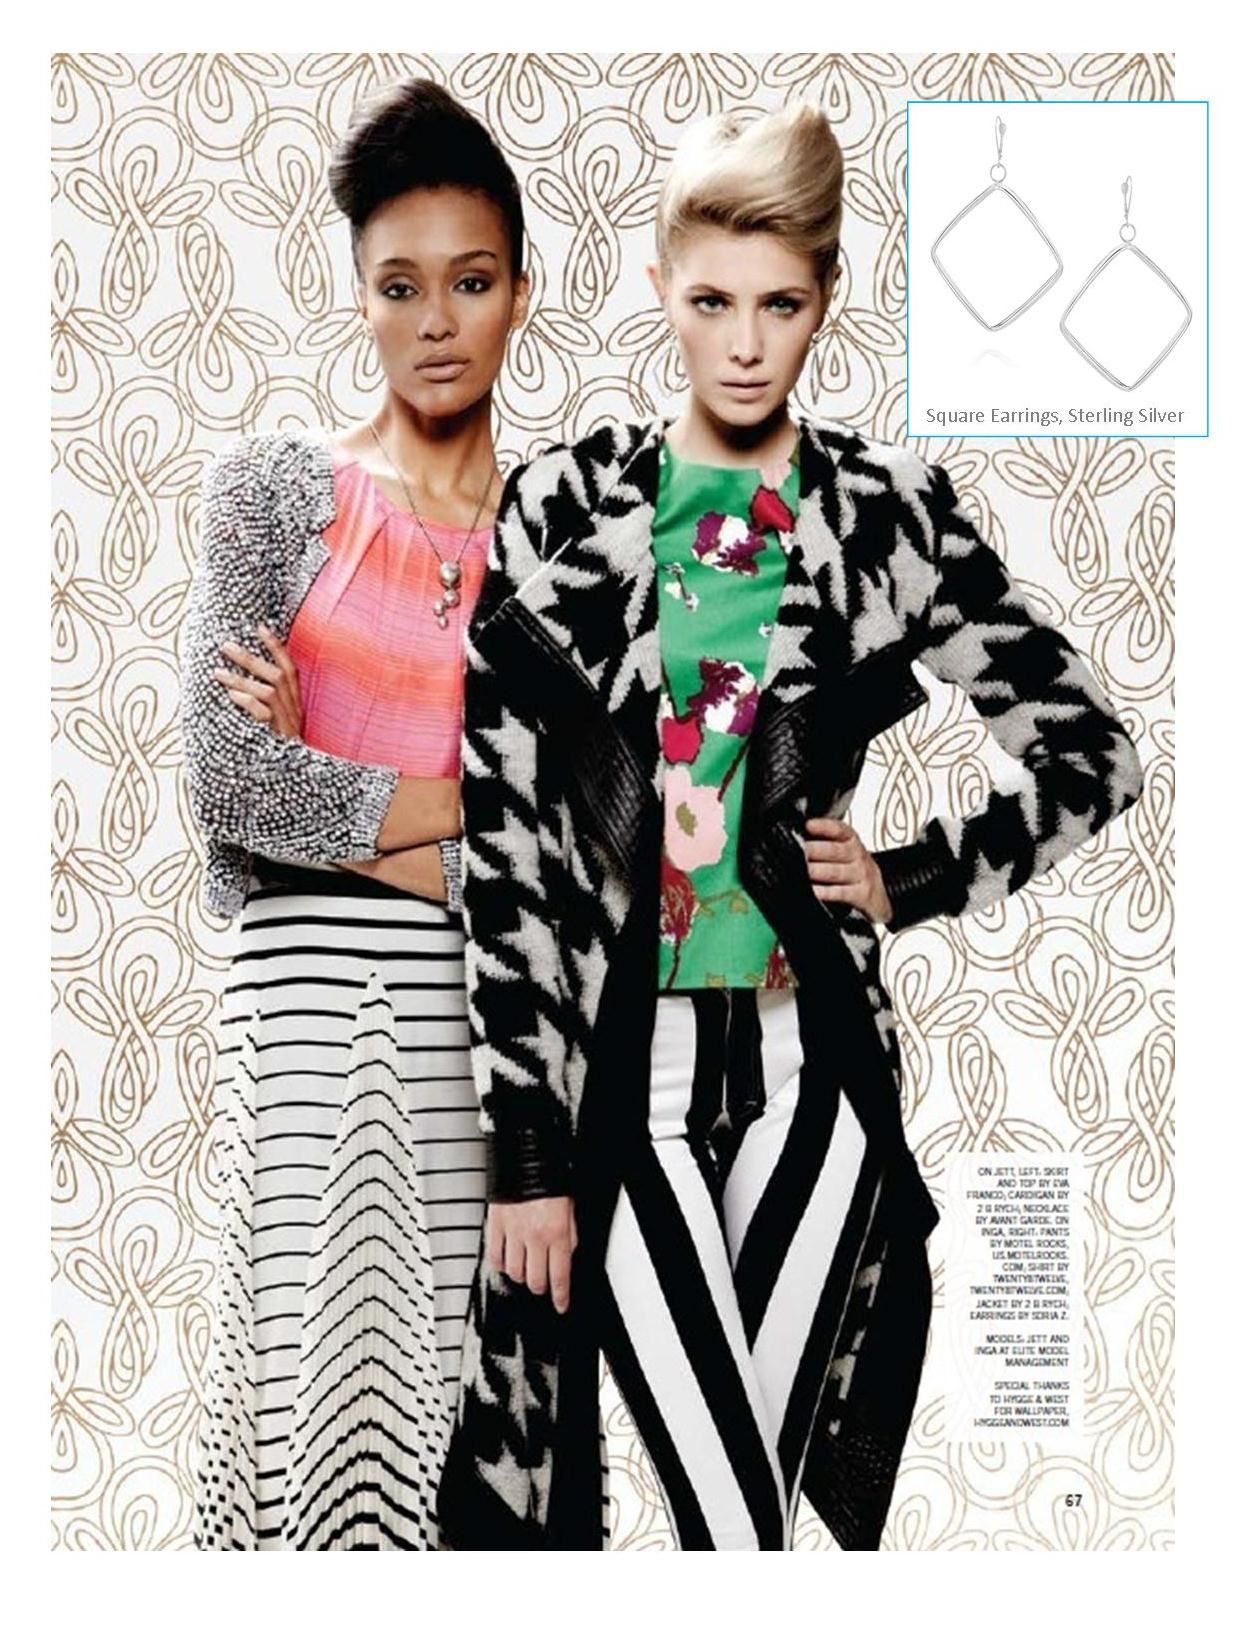 Soria Z. Square Earrings in BUST Magazine